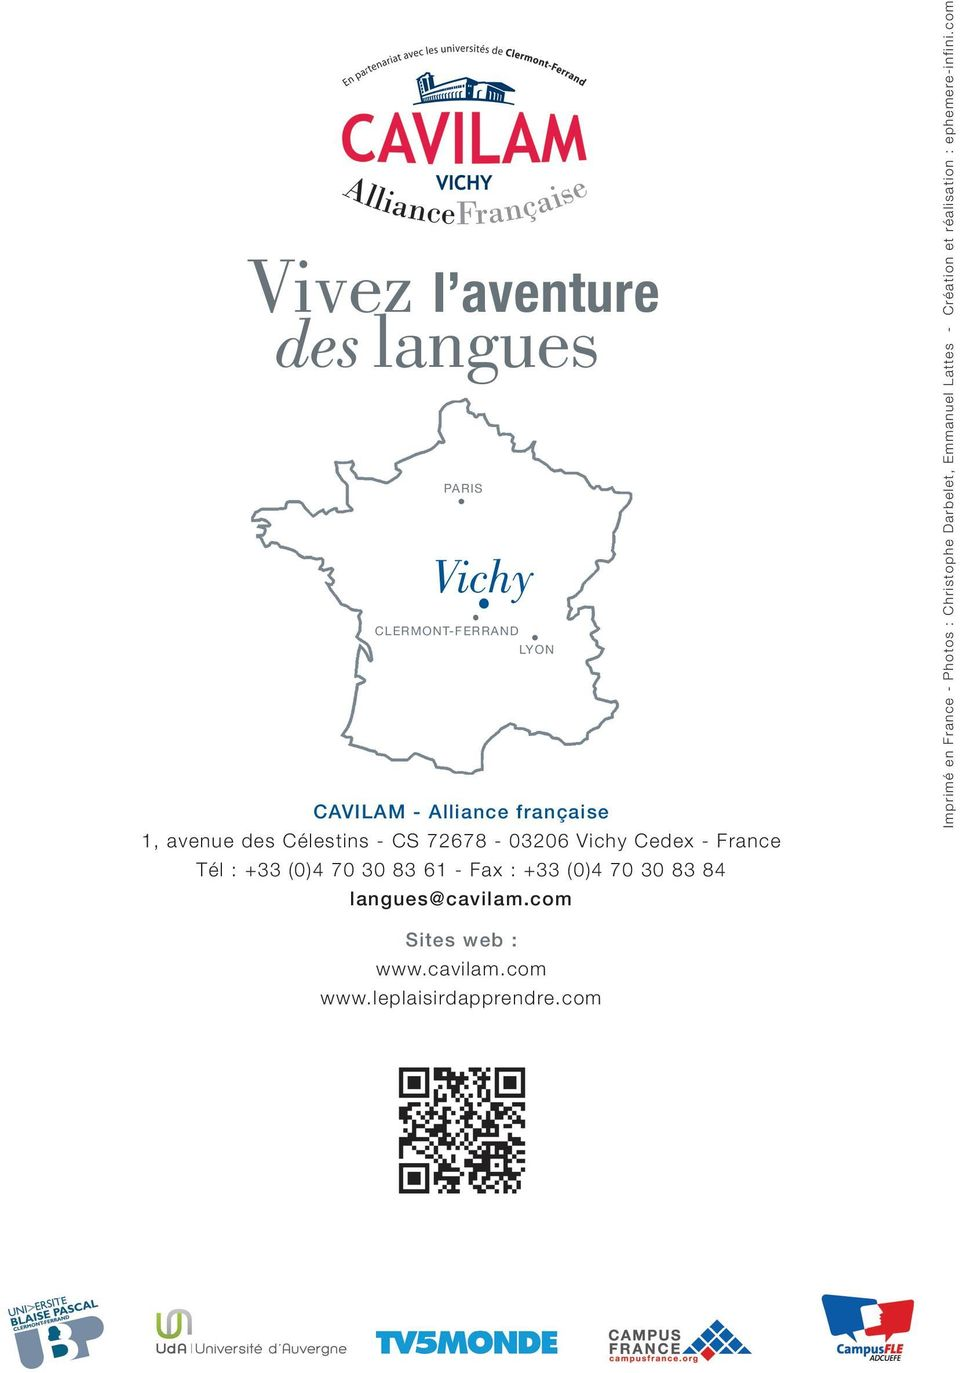 Vichy Cedex - France Tél : +33 (0)4 70 30 83 61 - Fax : +33 (0)4 70 30 83 84 langues@cavilam.